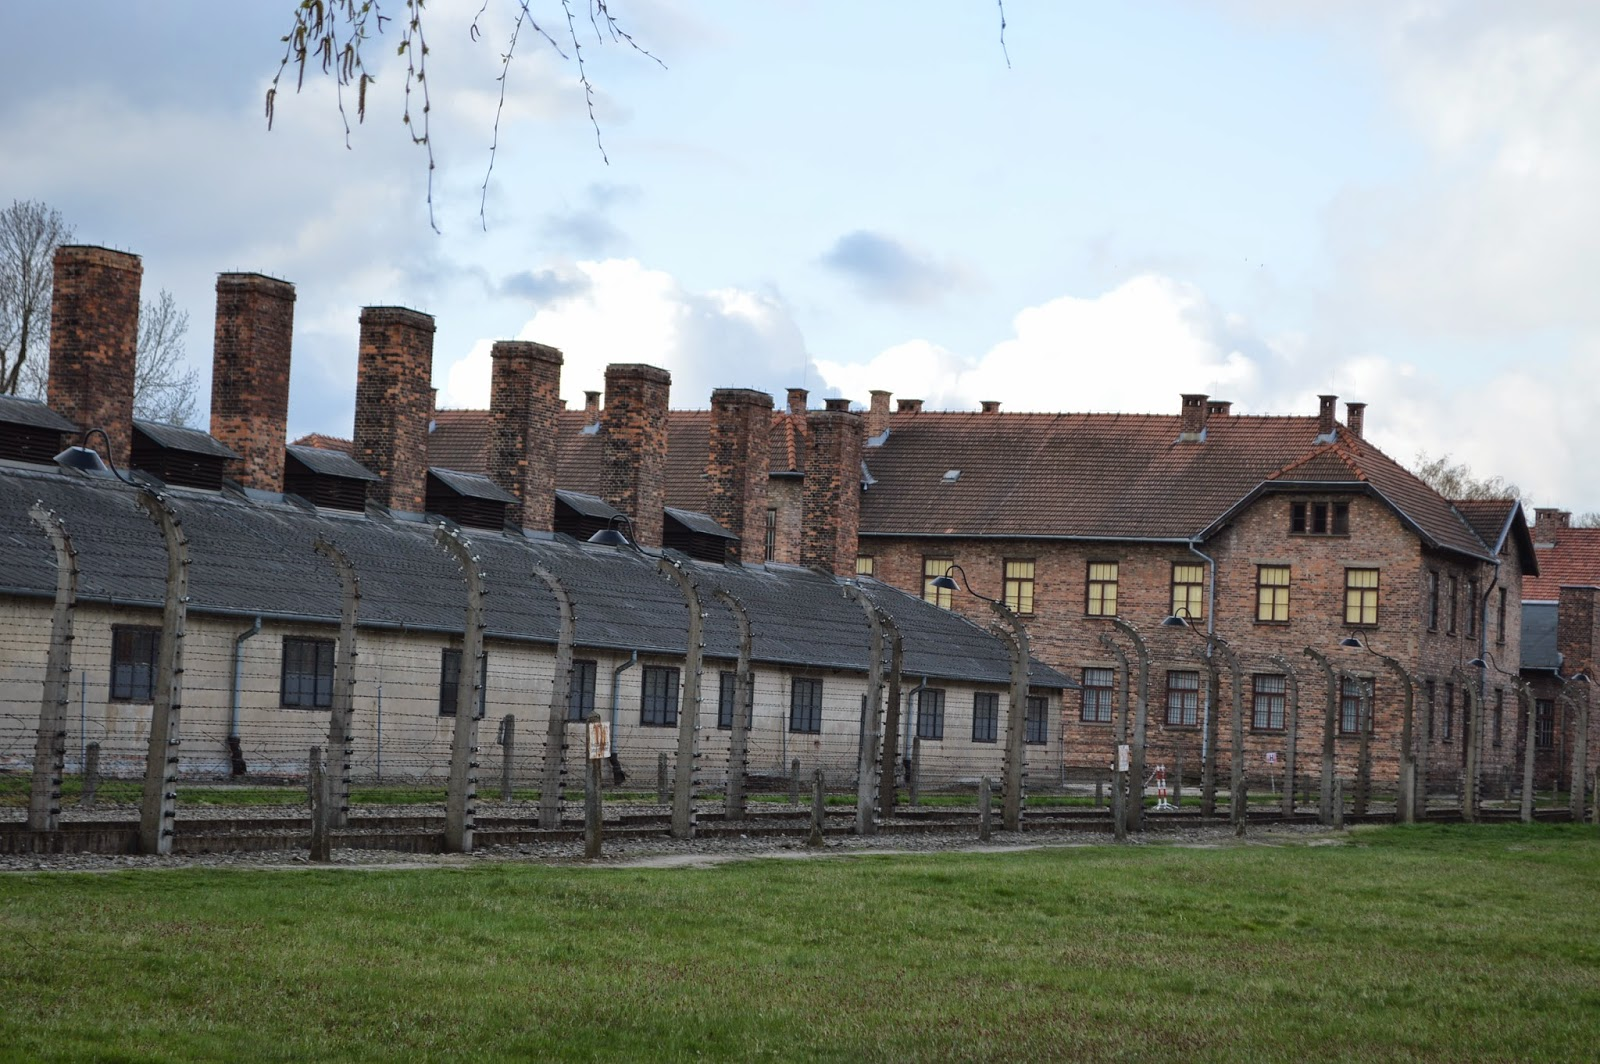 an analysis of the history of the museum of aushwitz one and aushwitz two by nazis Auschwitz museum: events, issues, and communication i am enclosing an auschwitz bulletin on behalf of the auschwitz museum the history of the auschwitz.